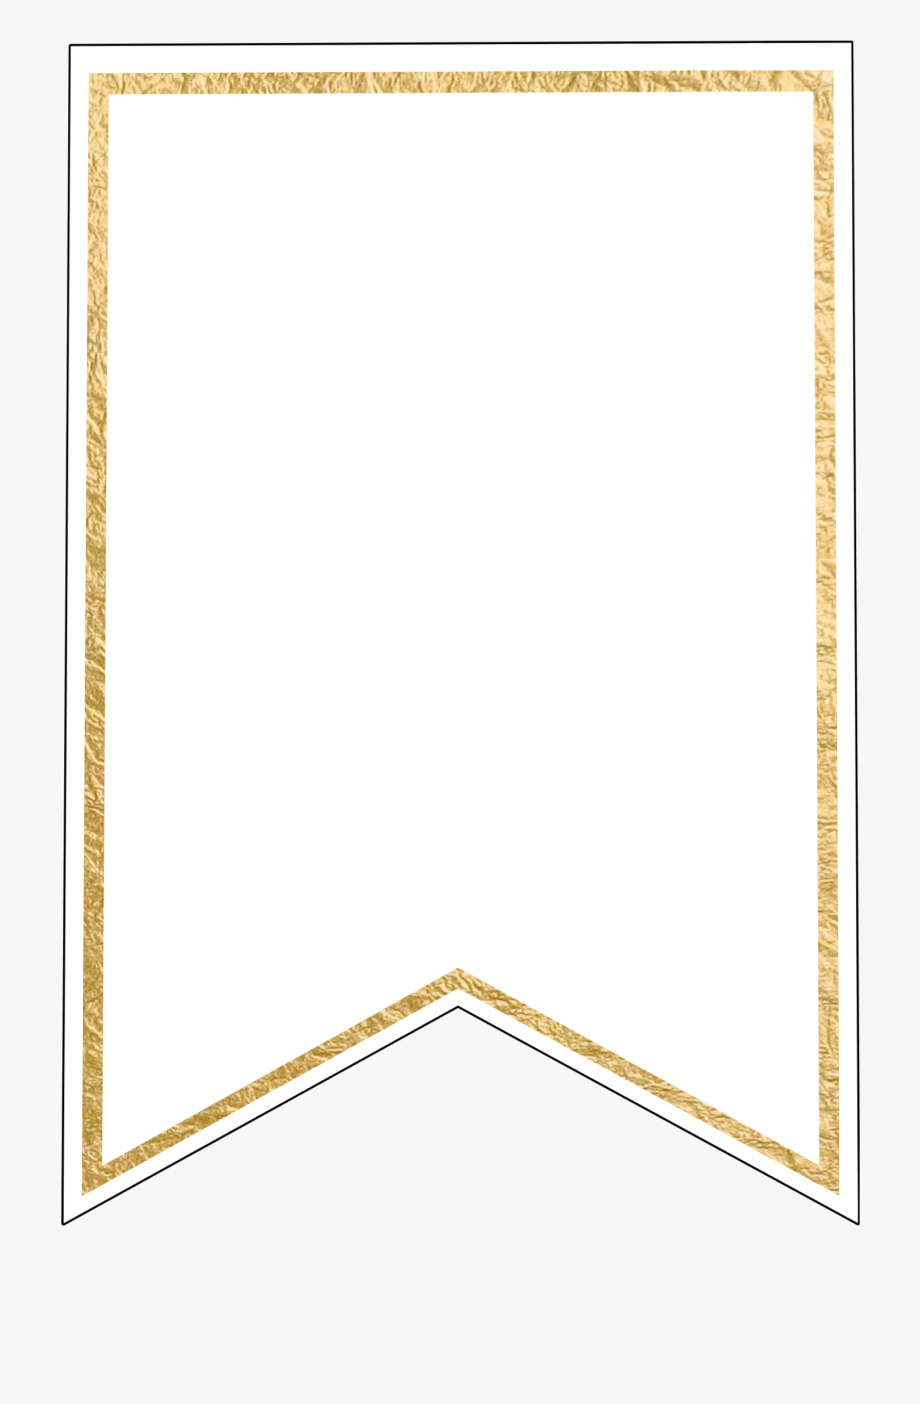 Free Pennant Banner Template, Download Free Clip Art, - Gold In Printable Pennant Banner Template Free